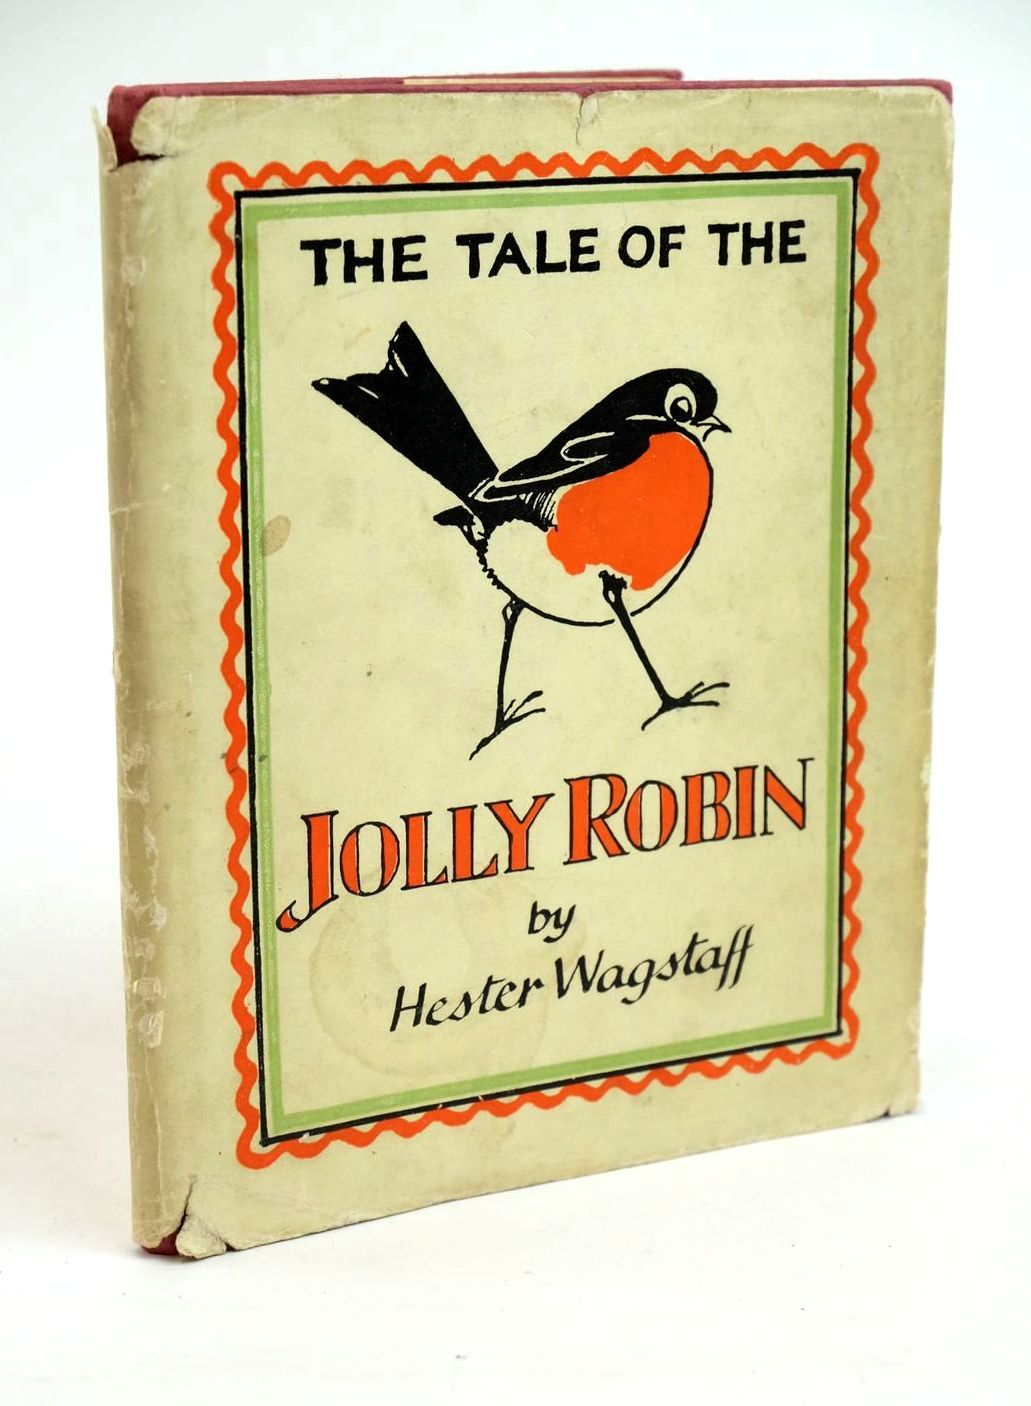 Photo of THE TALE OF THE JOLLY ROBIN written by Wagstaff, Hester illustrated by Wagstaff, Hester published by Faber & Faber Ltd. (STOCK CODE: 1321525)  for sale by Stella & Rose's Books